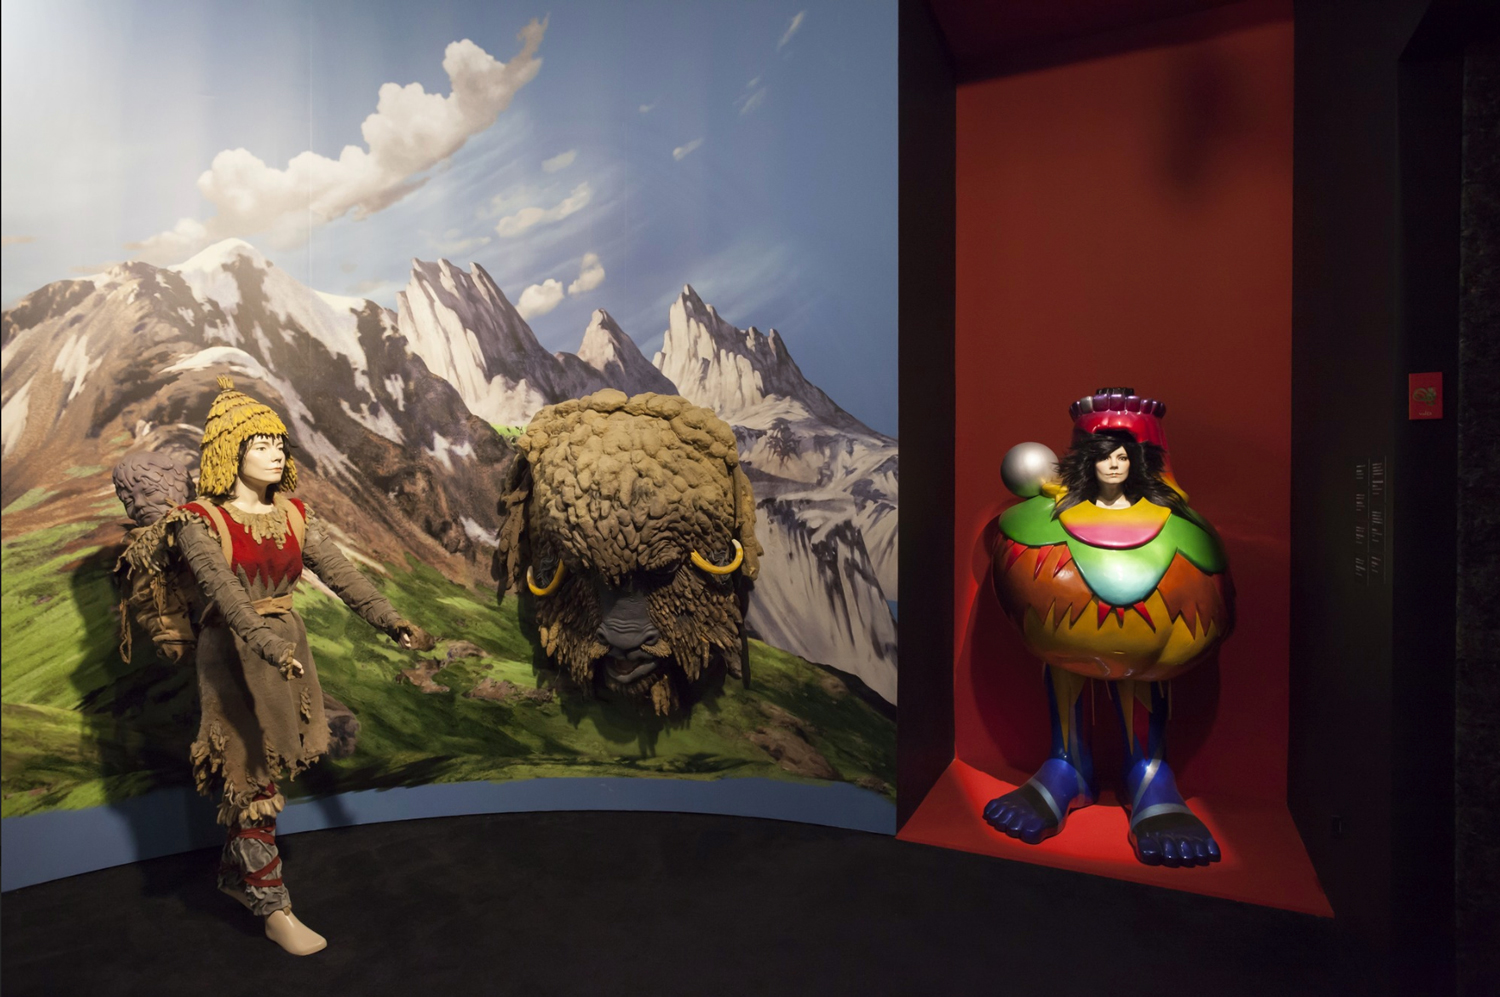 Installation view of Björk show at